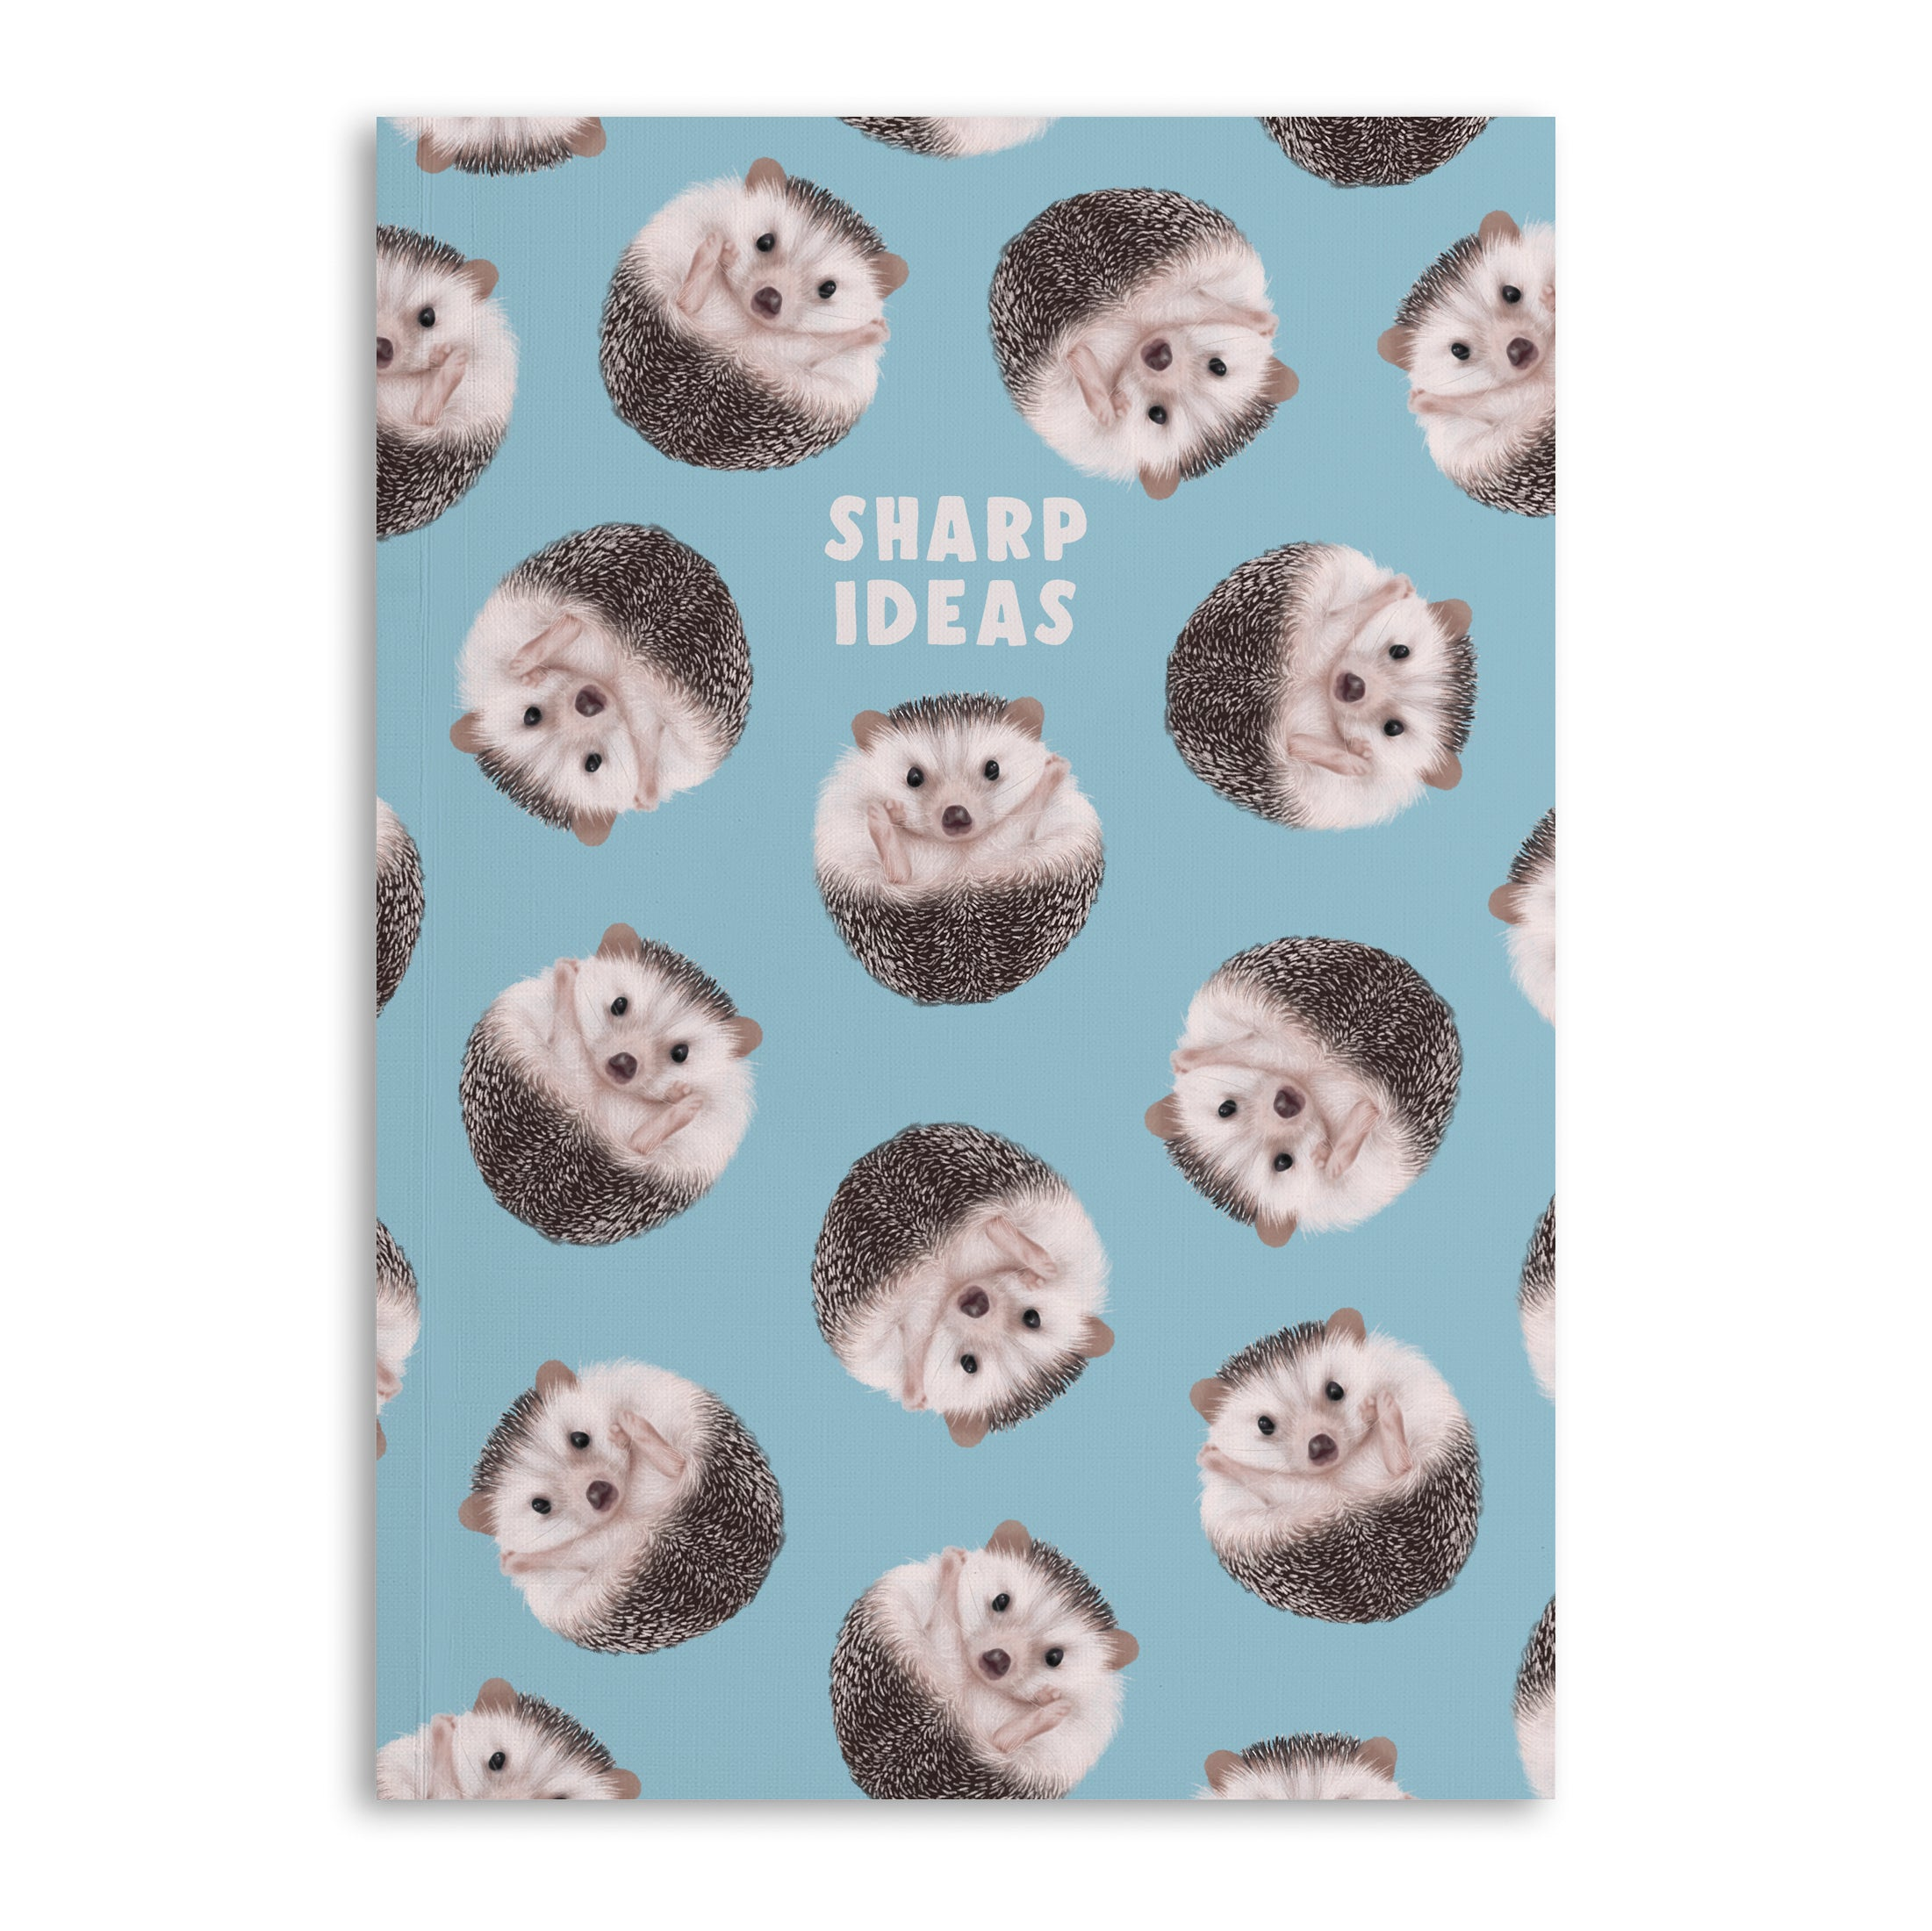 Hedgehog 'Sharp Ideas' A5 Lined Notebook (120 Pages)